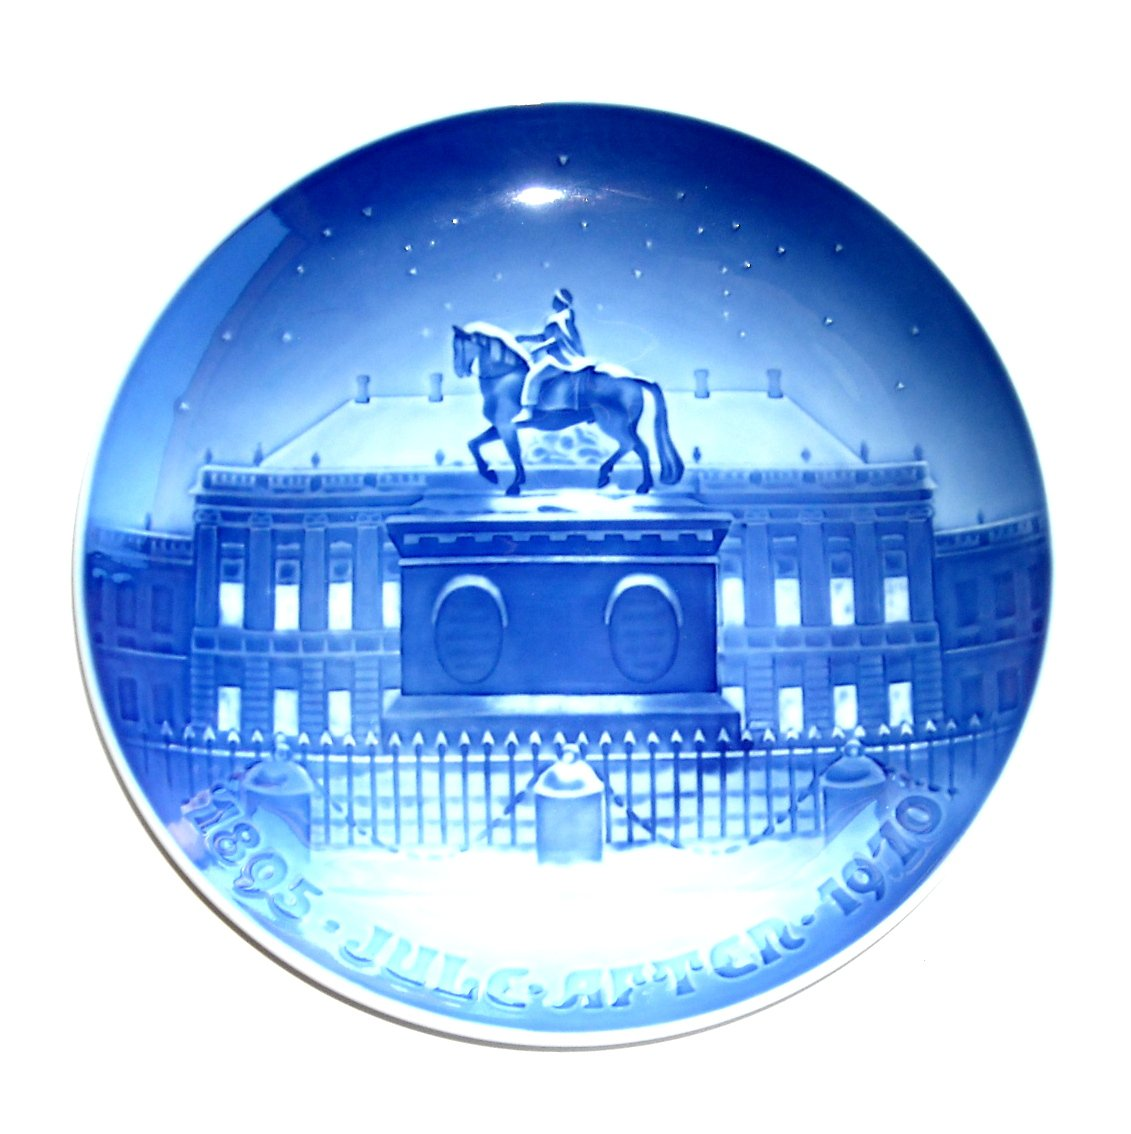 The Royal Palace Bing & Grondahl Copenhagen Jubilee Plate 1970